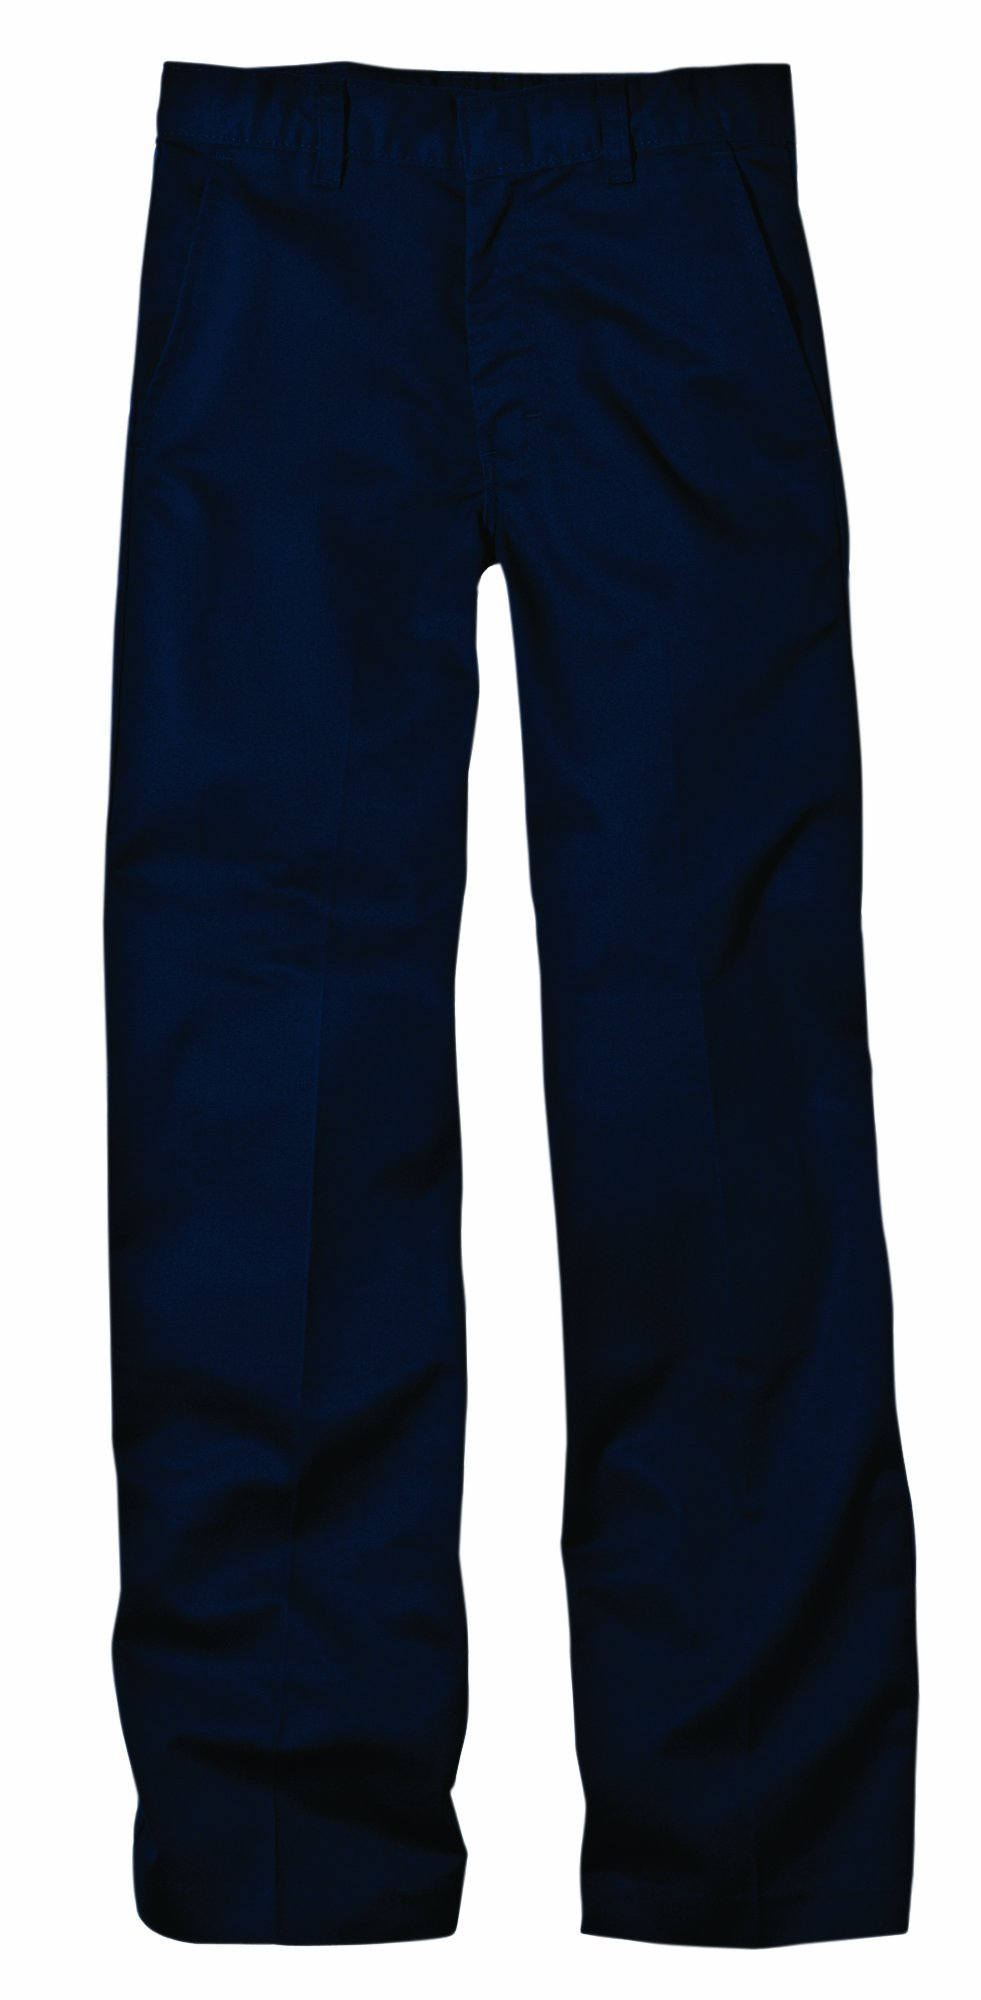 Dickies KP321 Boys' FlexWaist(tm) Flat Front Pant with Logo Dark Navy Size 18 Husky